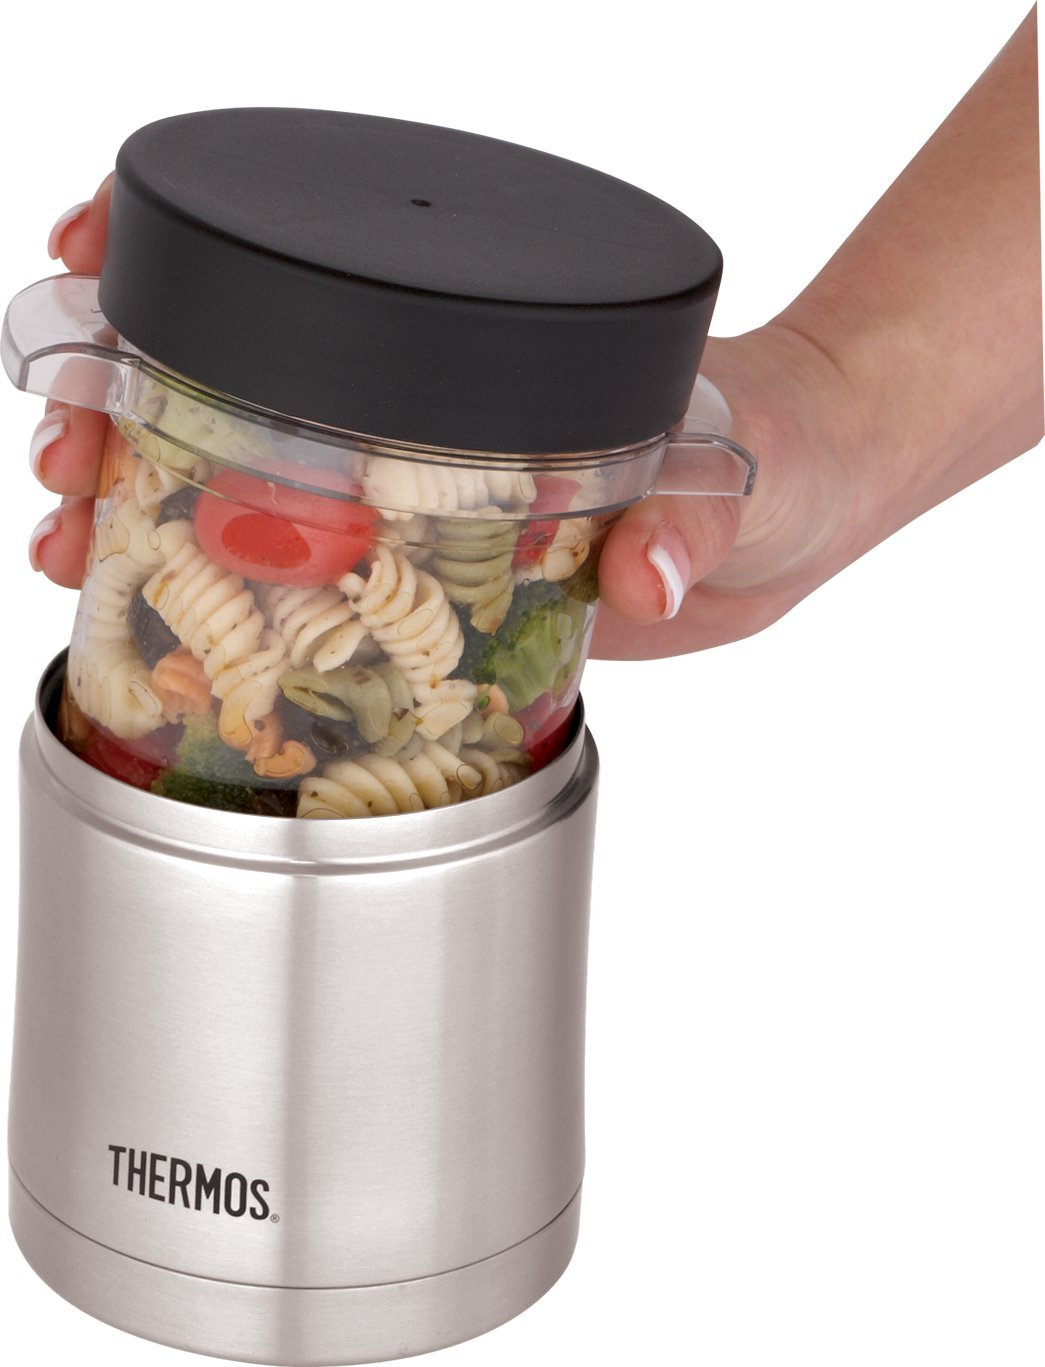 Amazoncom Thermos 12 Ounce Food Jar with Microwavable Container